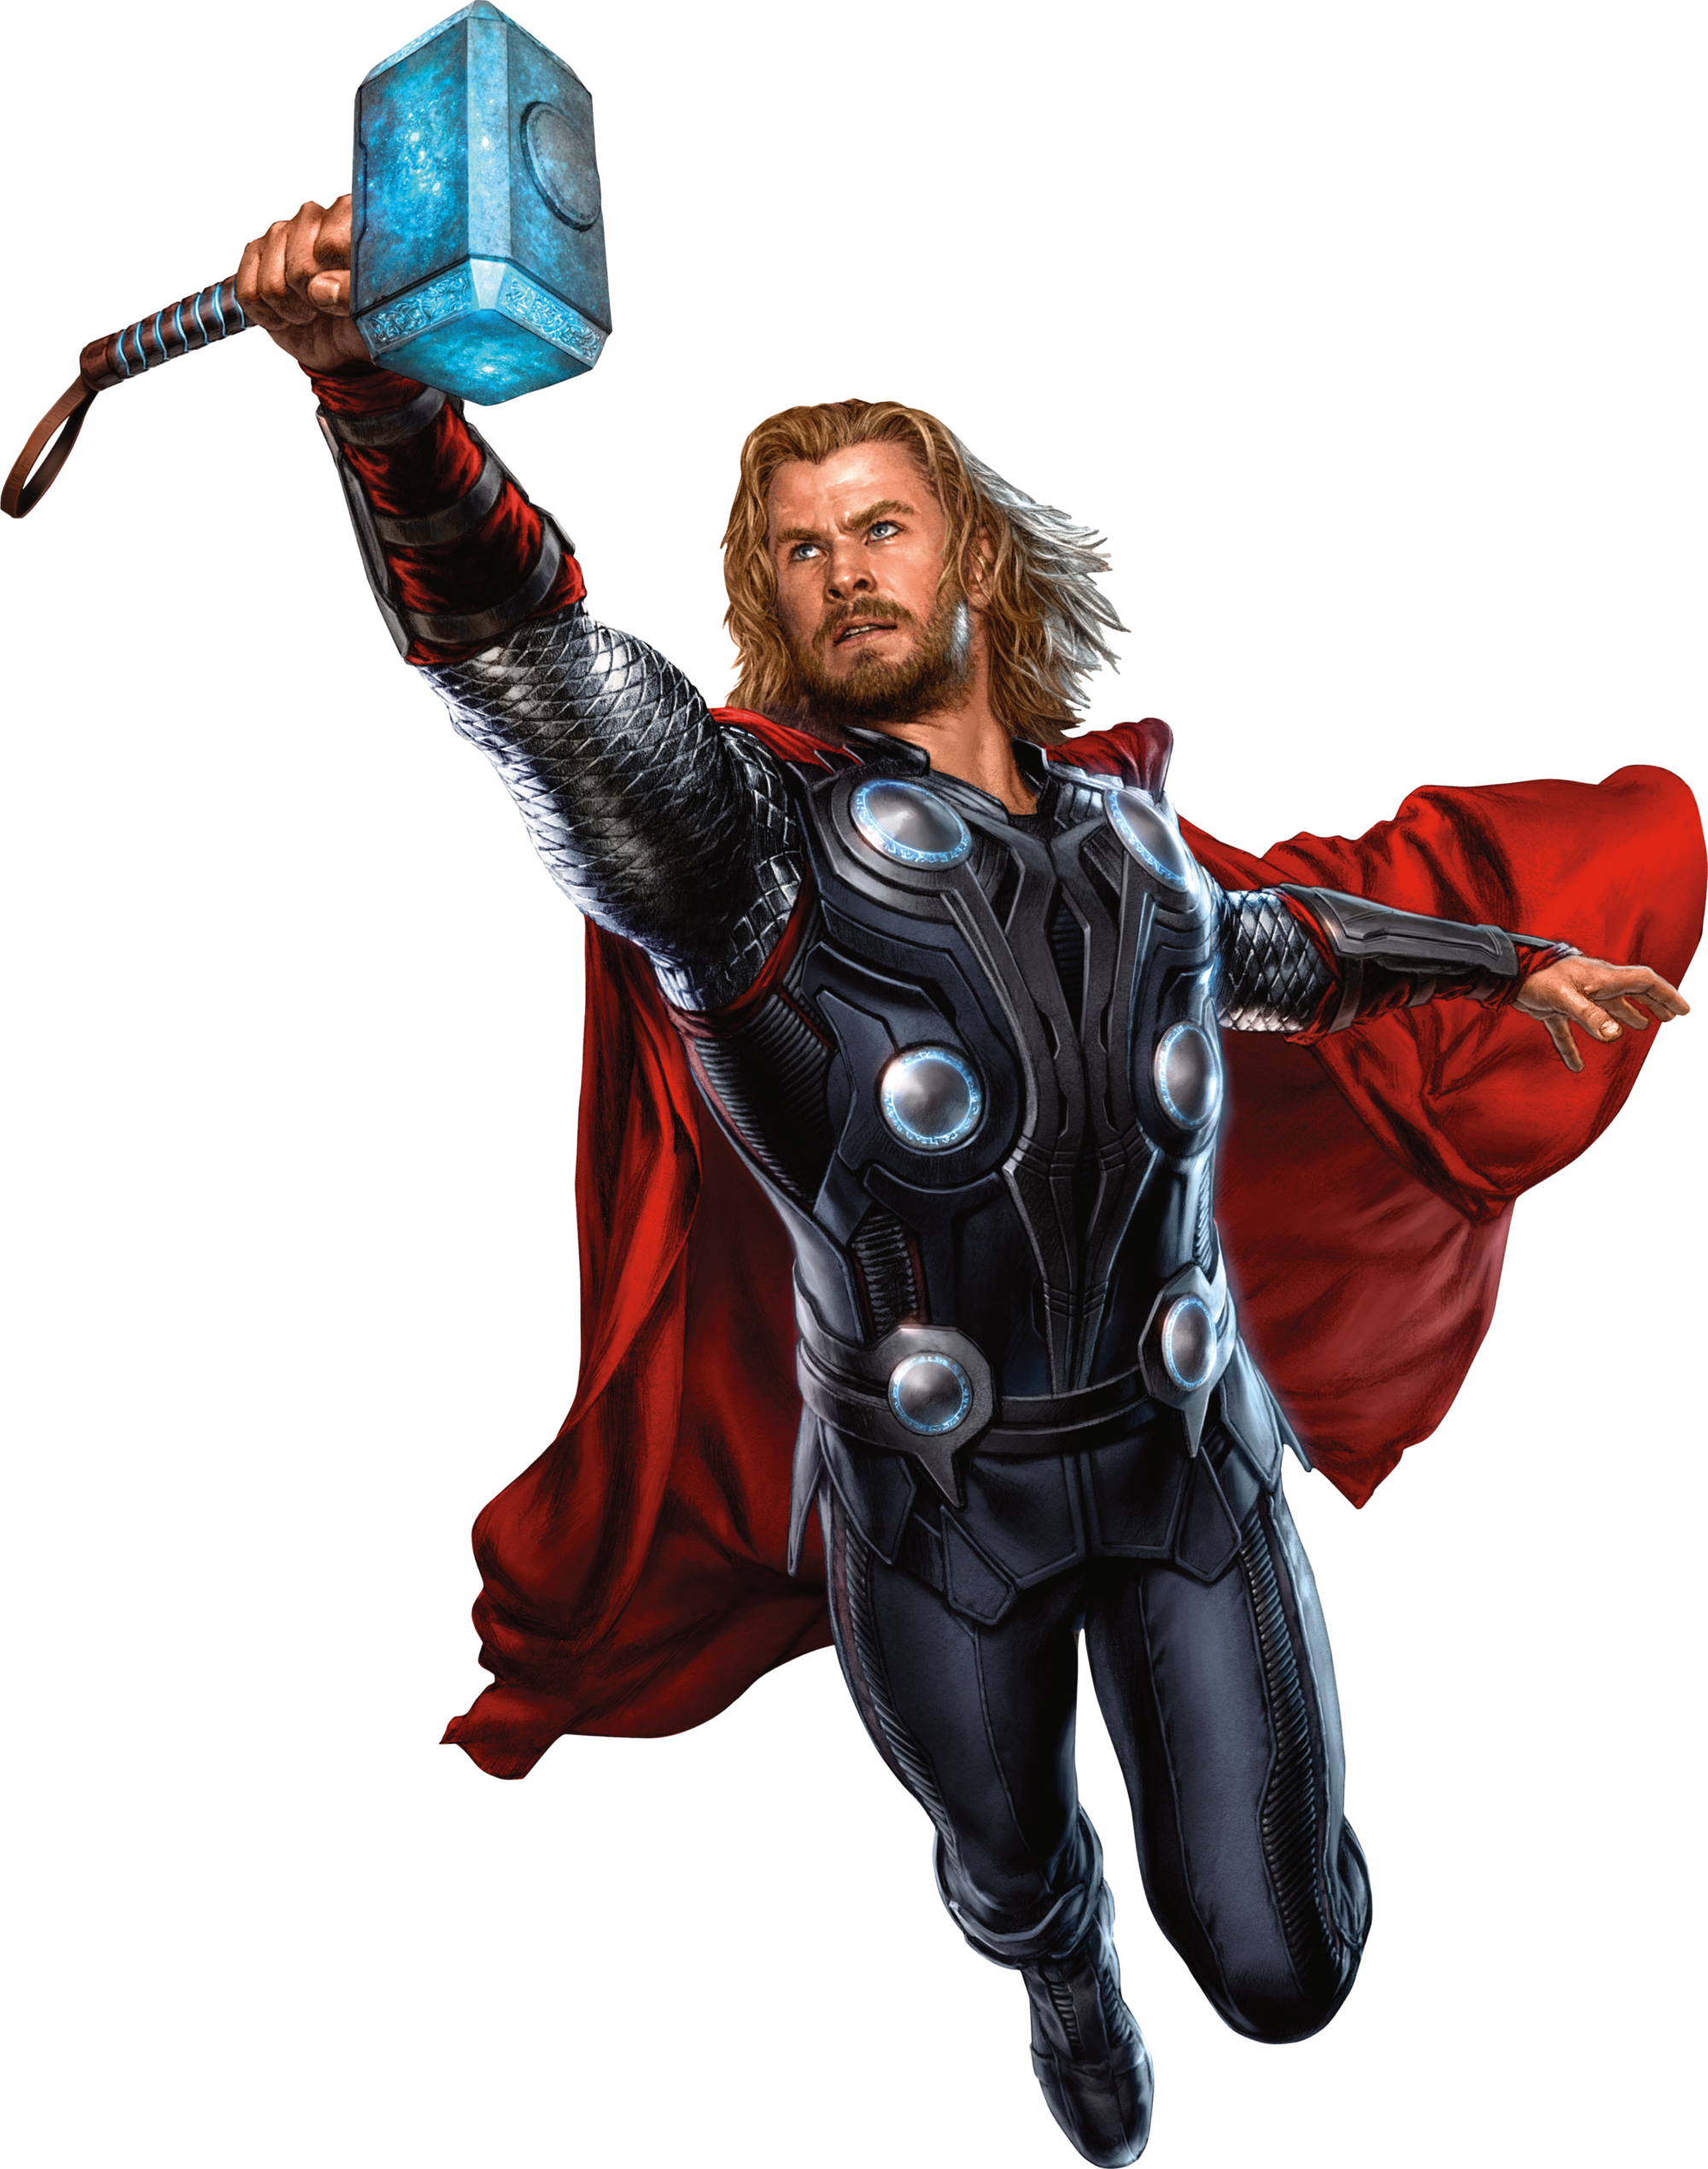 download Thor clipart super hero squad. Marvel cinematic universe clip